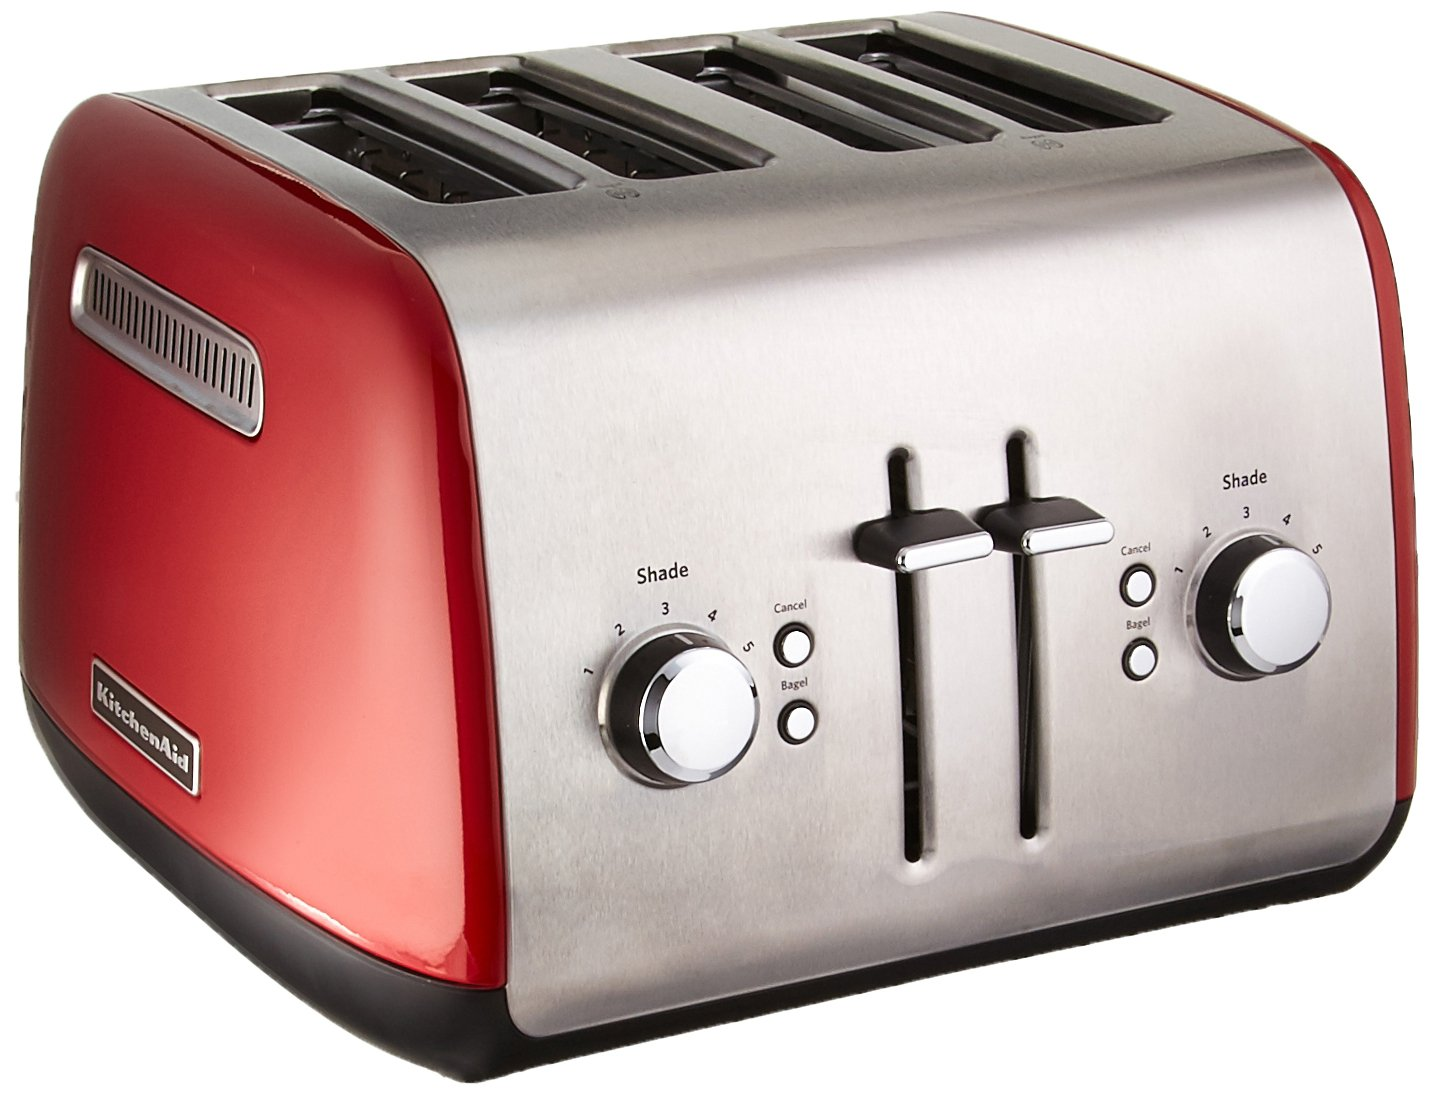 KitchenAid KMT4115ER Toaster with Manual High-Lift Lever, Empire Red